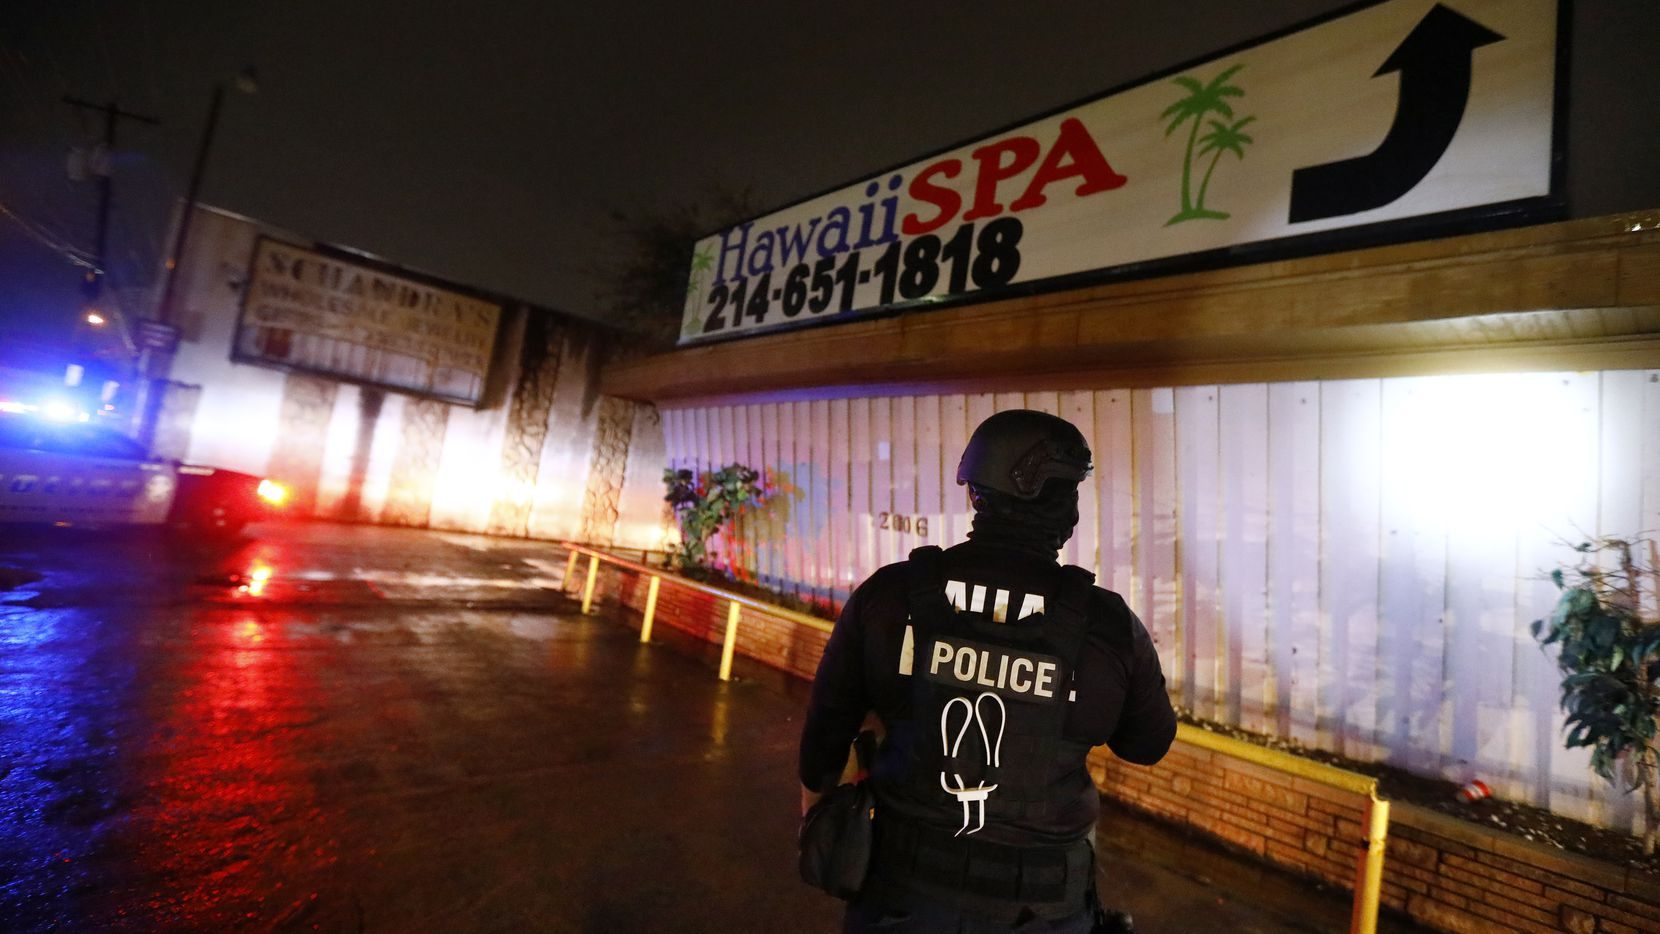 A Dallas Police vice officer inspects the outside of Jade Spa, one of the longest-running illicit massage parlors in Dallas.